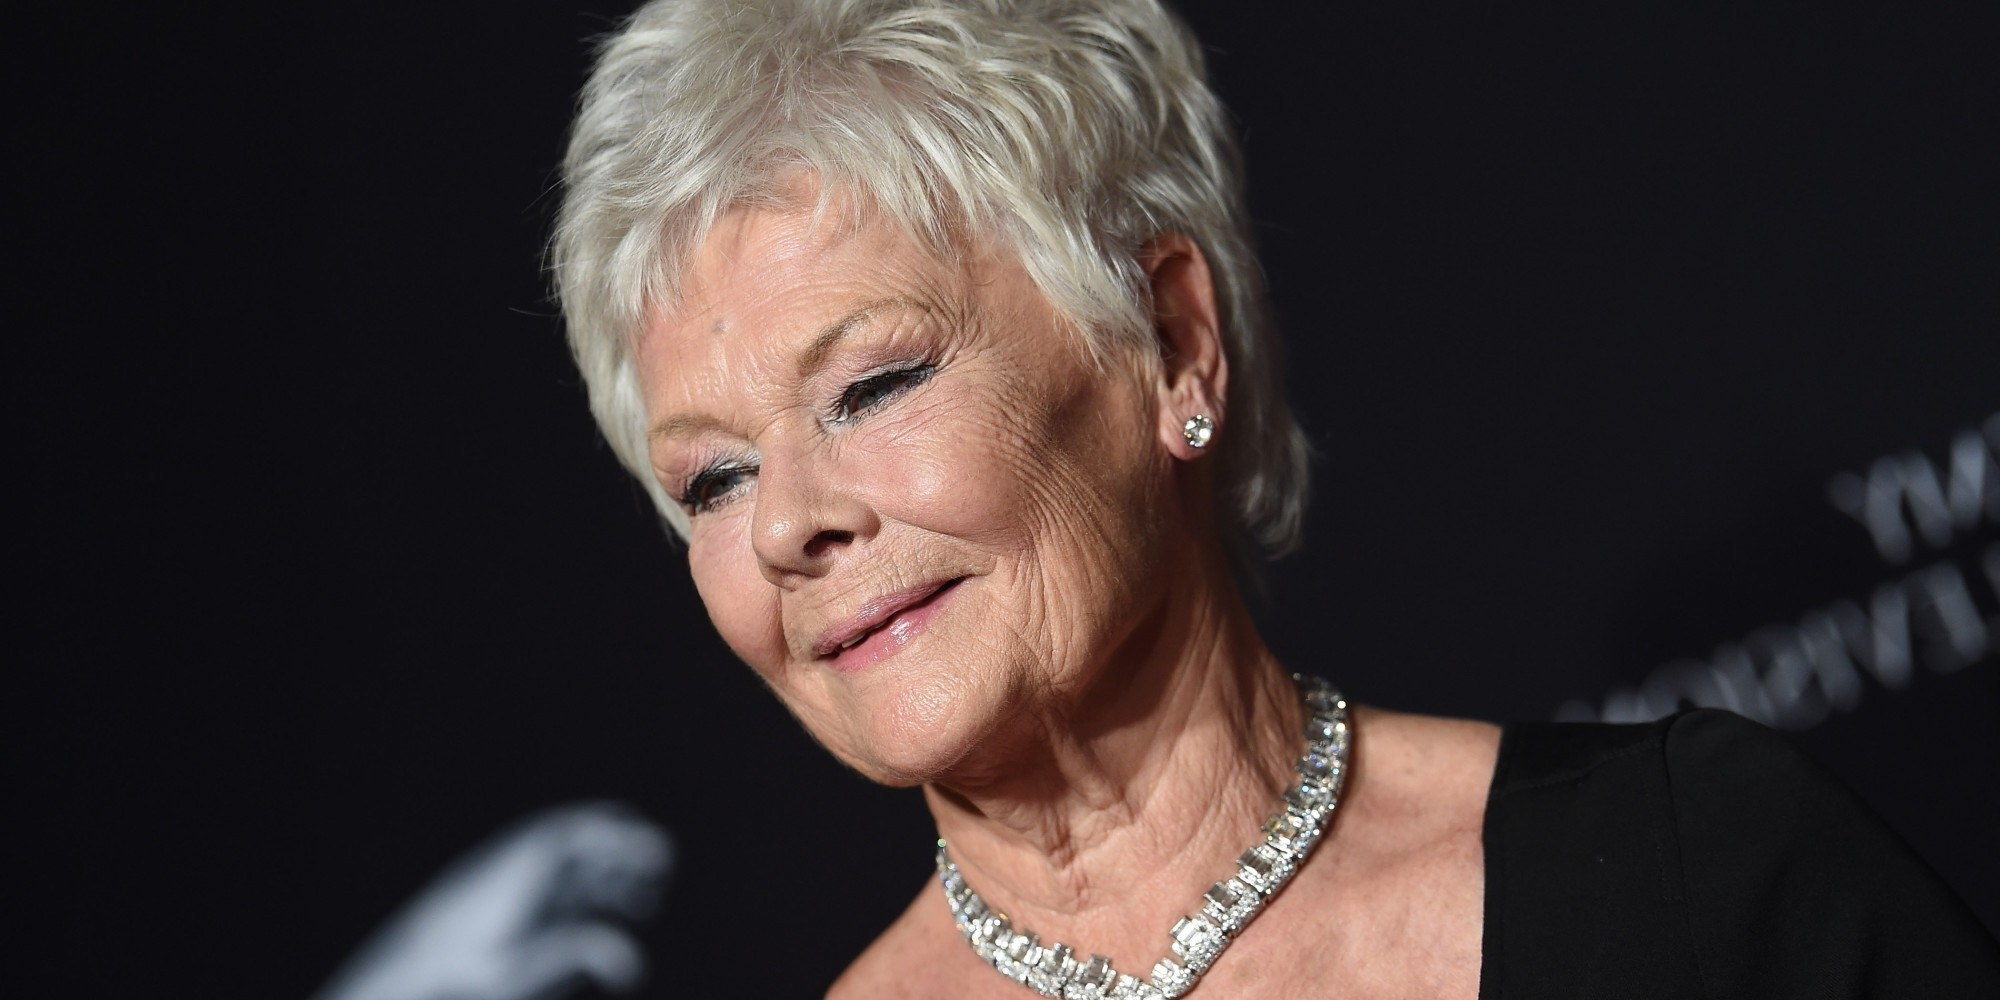 Photo Gallery of Judi Dench Pixie Hairstyles (Showing 4 of 15 Photos)